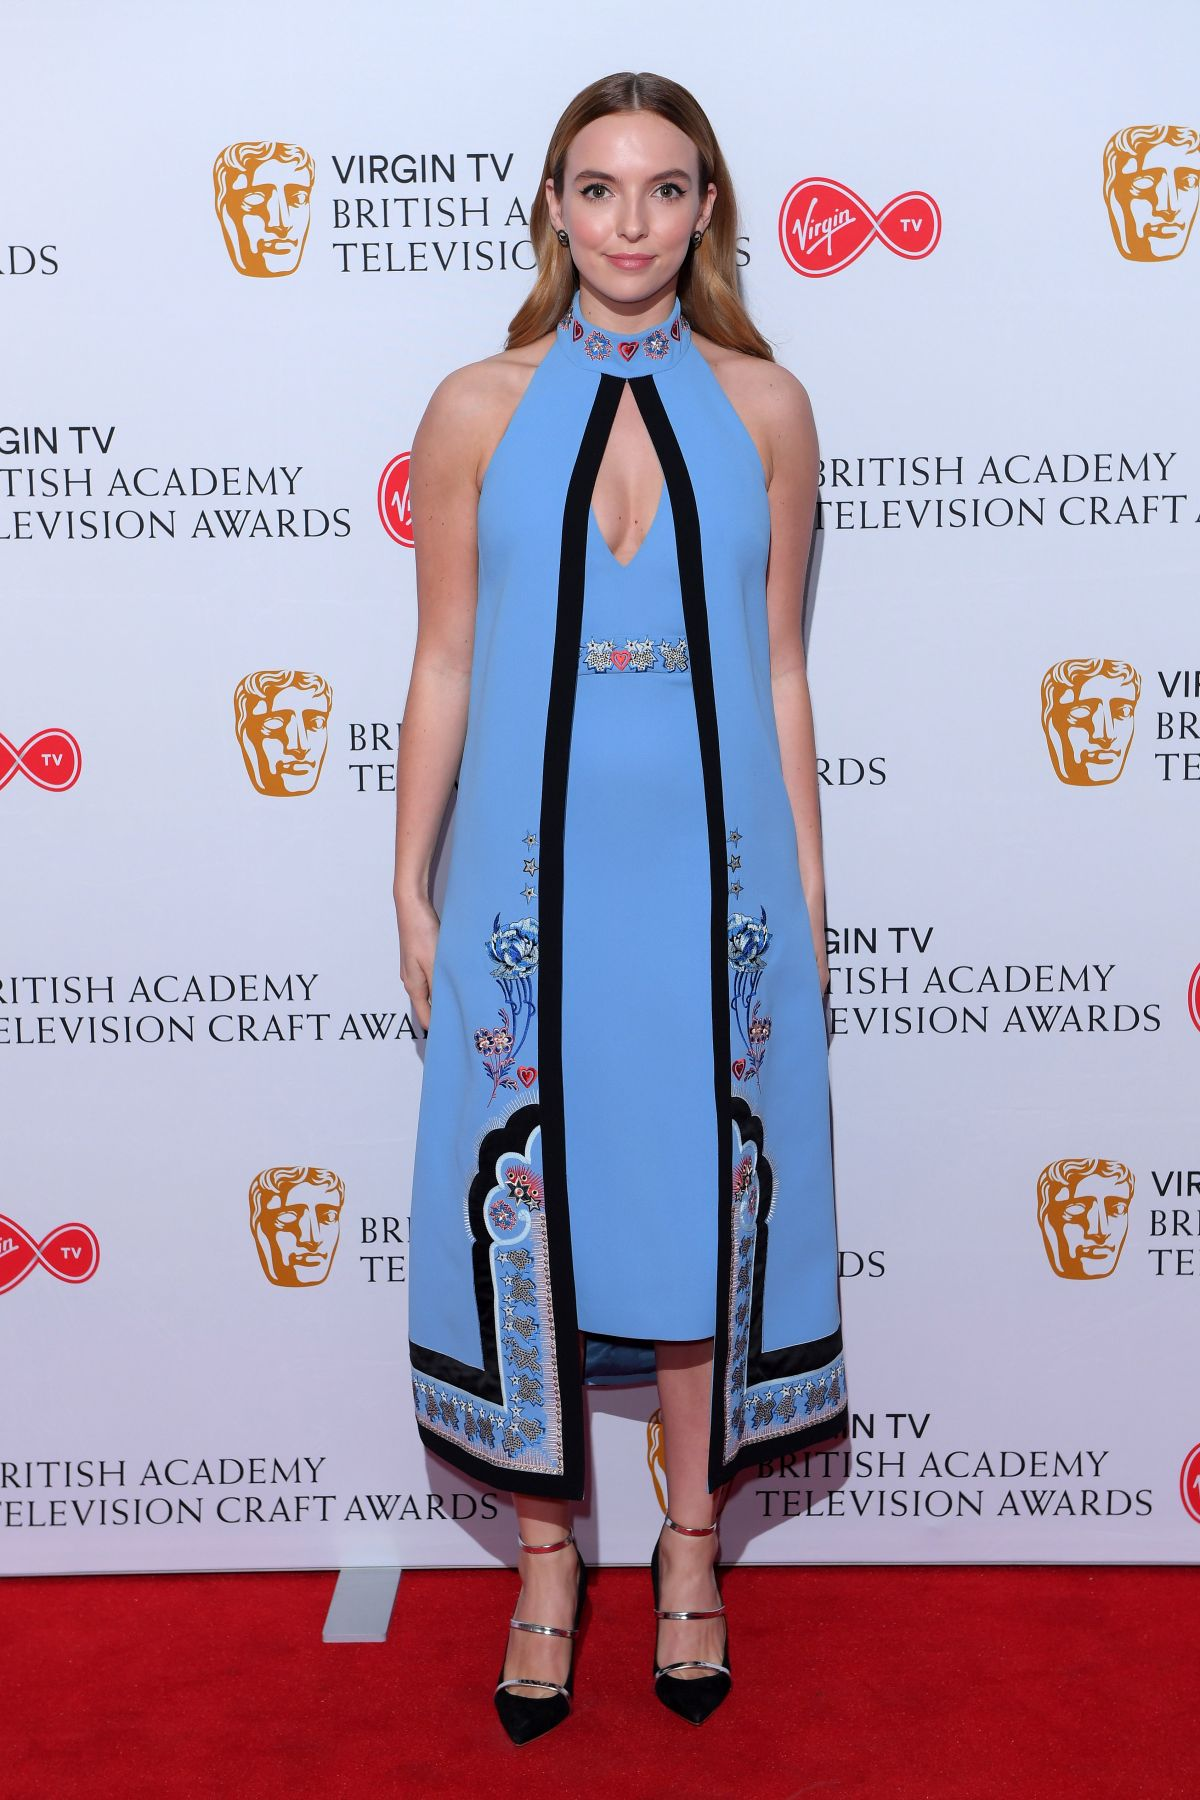 JODIE COMER at British Academy Television and Craft Awards Nominees Party in London 04/20/2017   jodie-comer-at-british-academy-television-and-craft-awards-nominees-party-in-london-04-20-2017_3